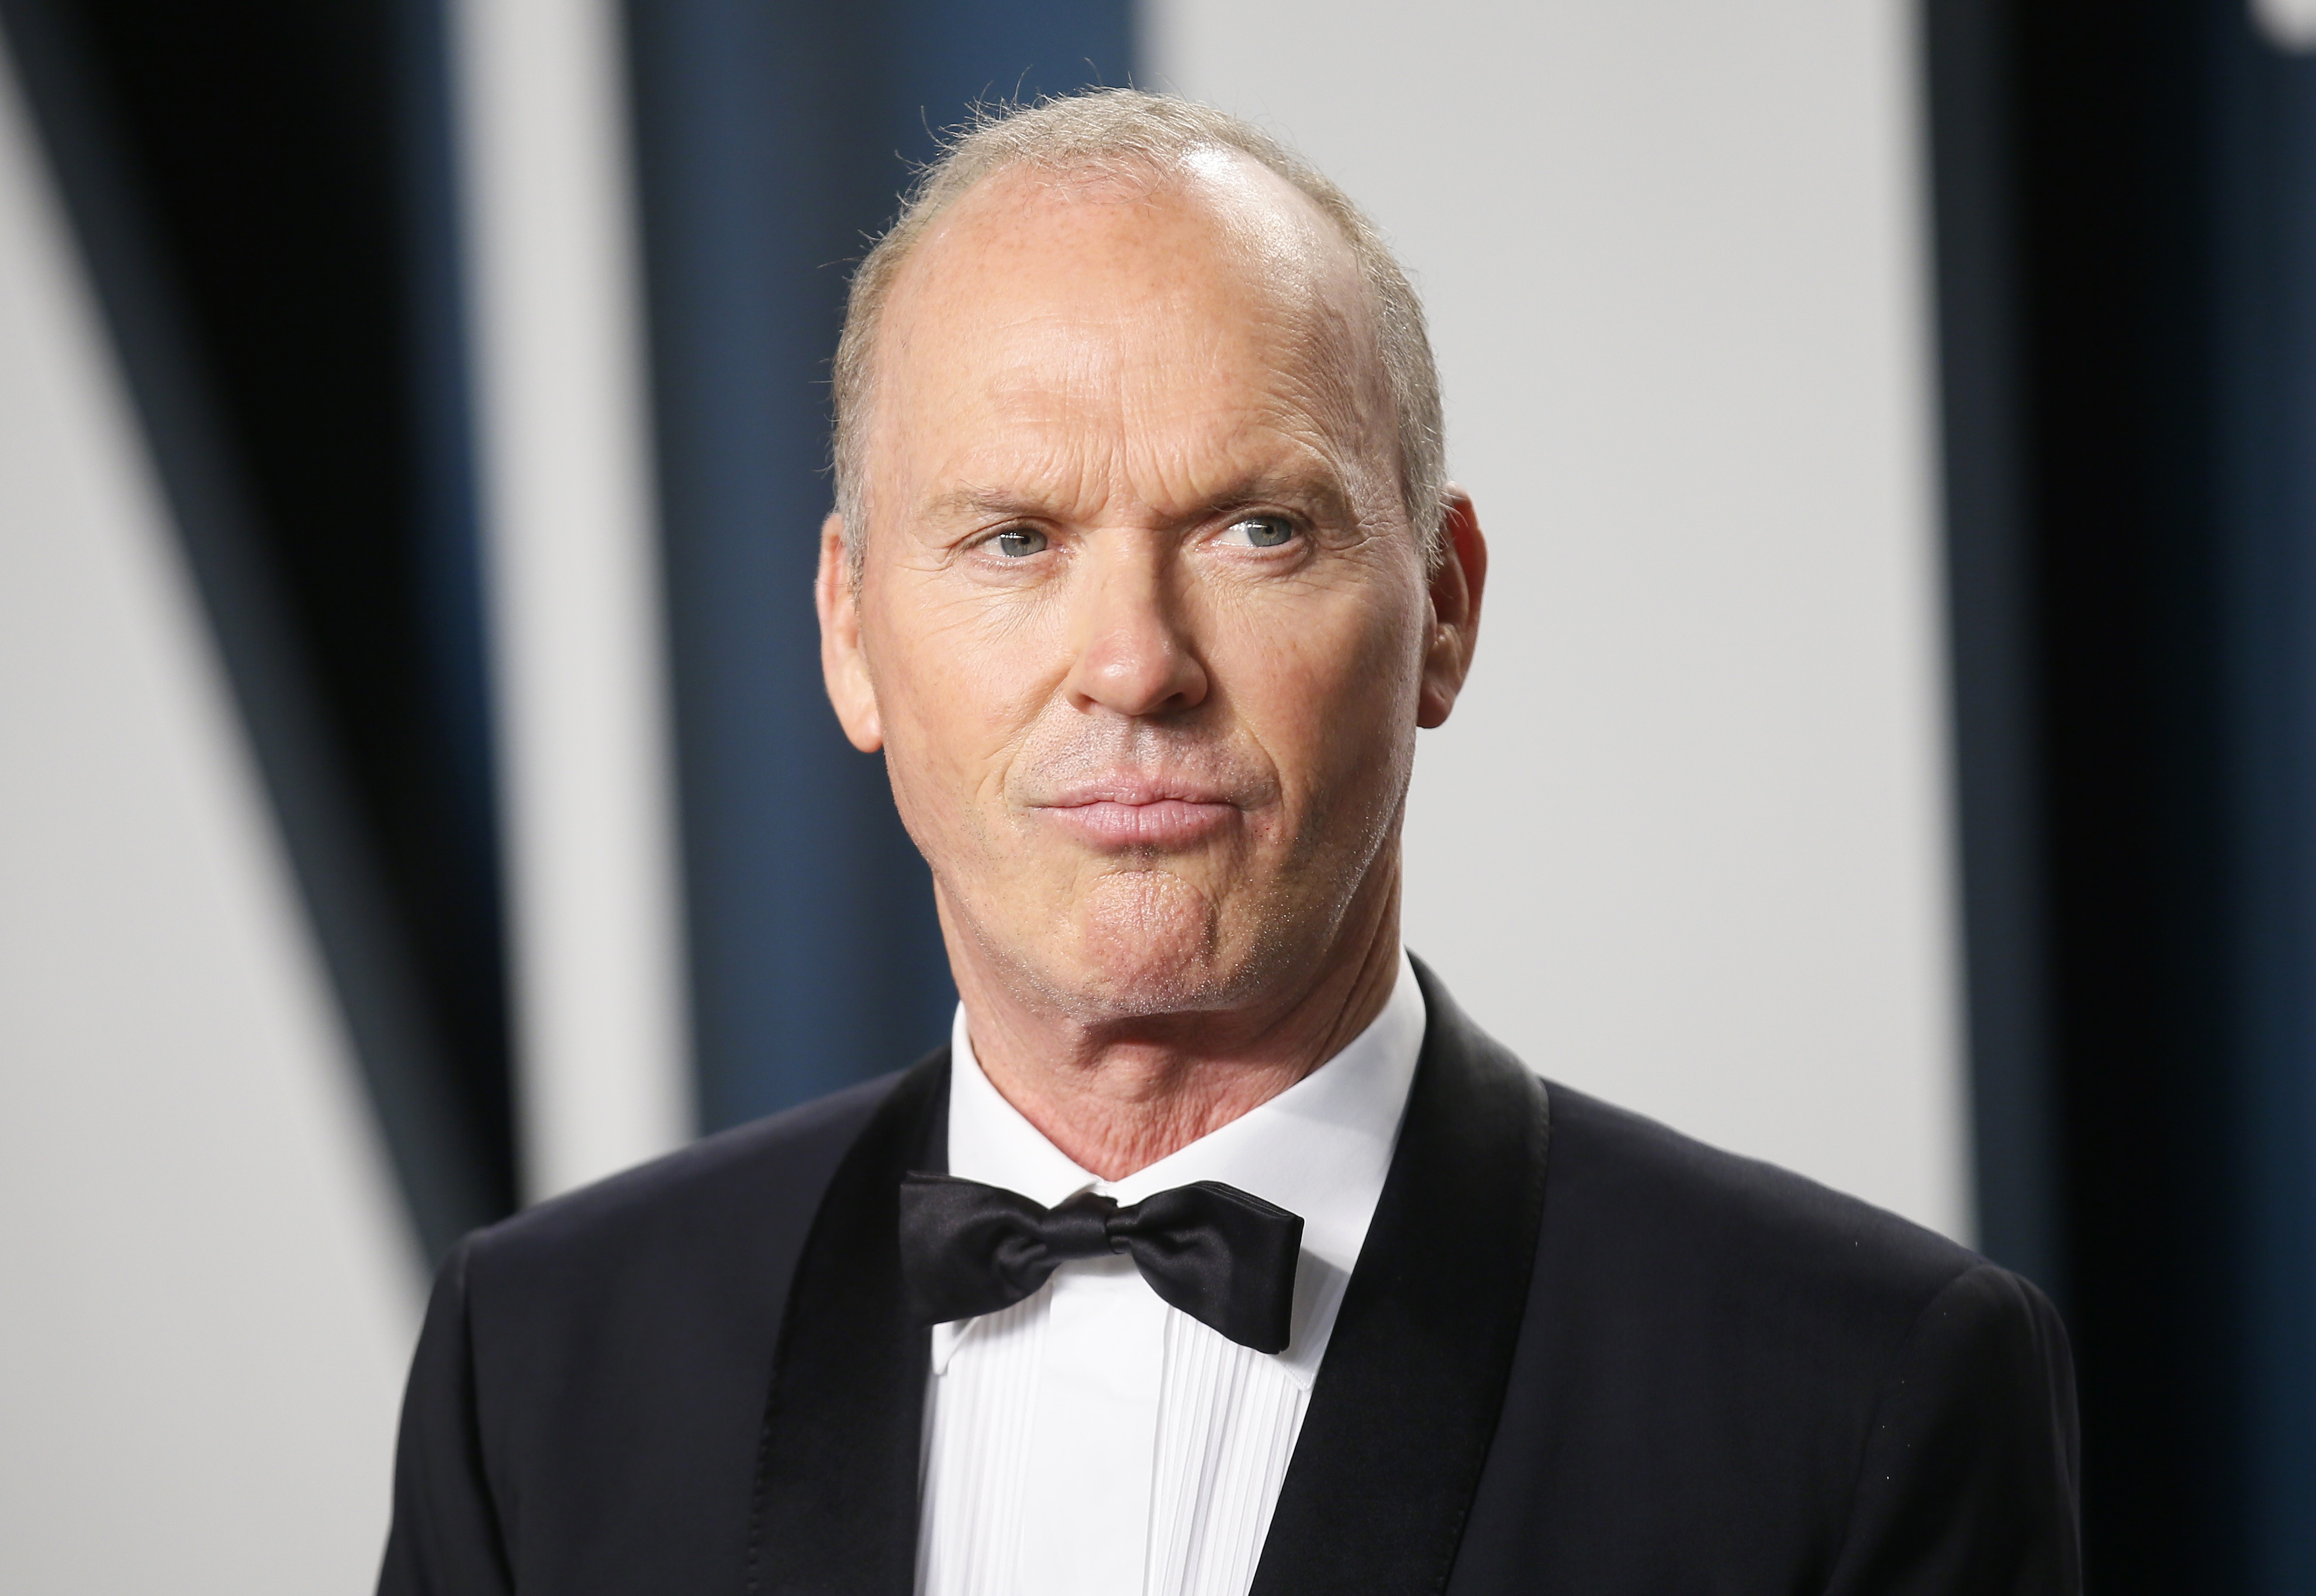 Michael Keaton attends the Vanity Fair Oscar party in Beverly Hills during the 92nd Academy Awards, in Los Angeles, California, U.S., February 9, 2020.     REUTERS/Danny Moloshok